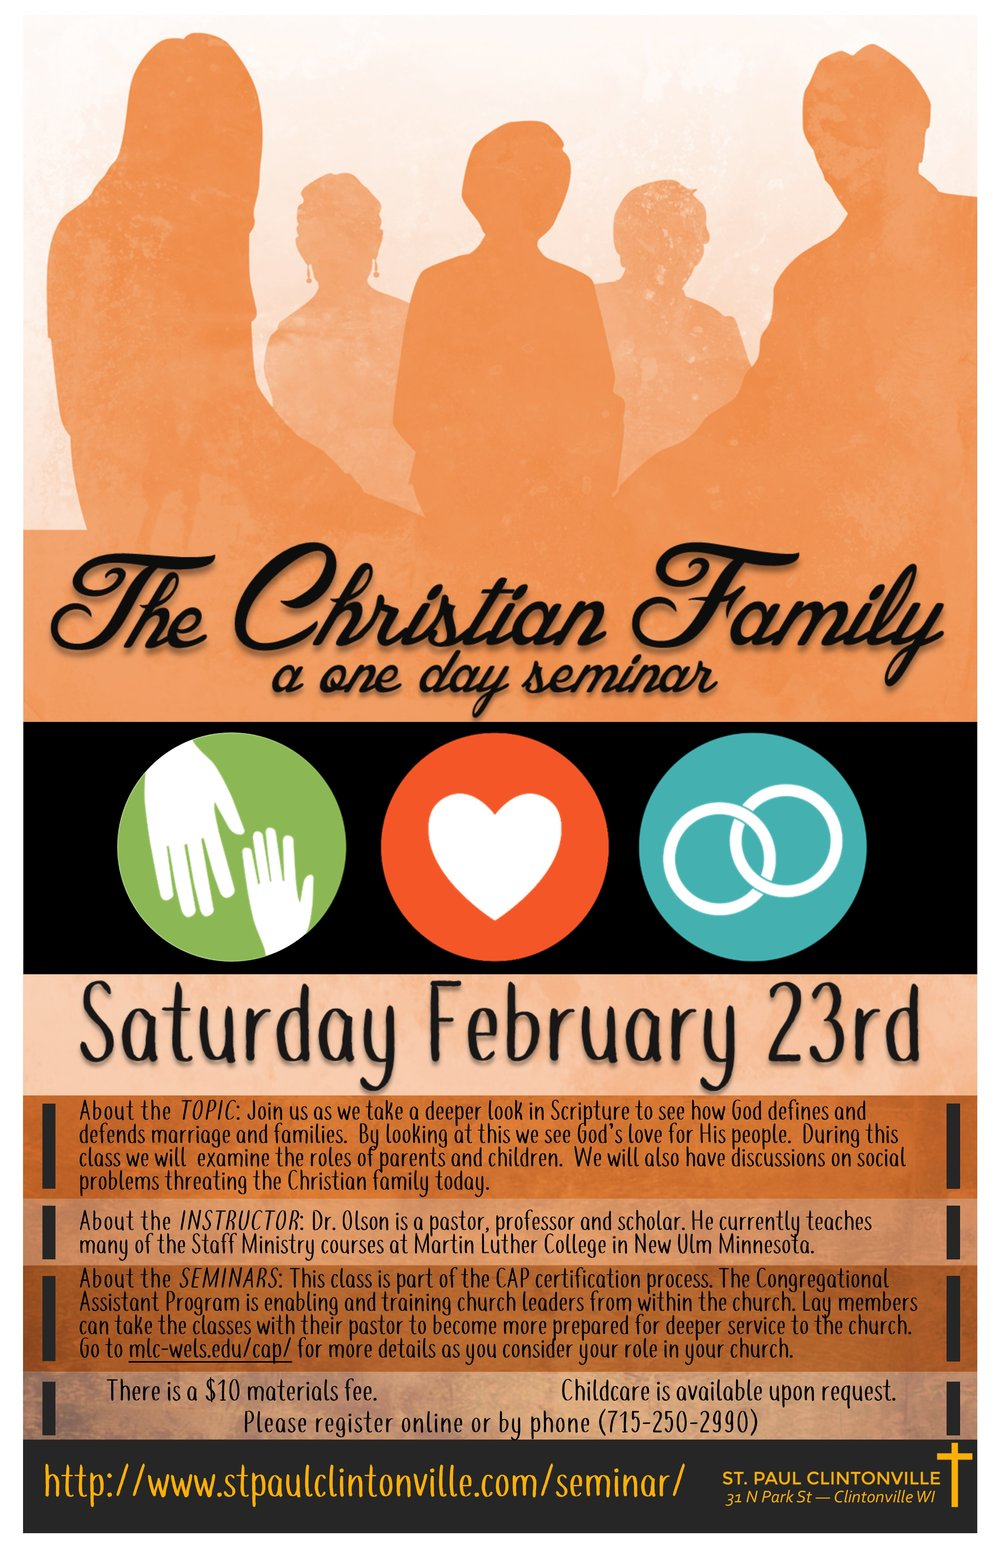 POSTER: one day seminar at St Paul Clintonville WI February 23, 2019, Christian Education, Bible Study